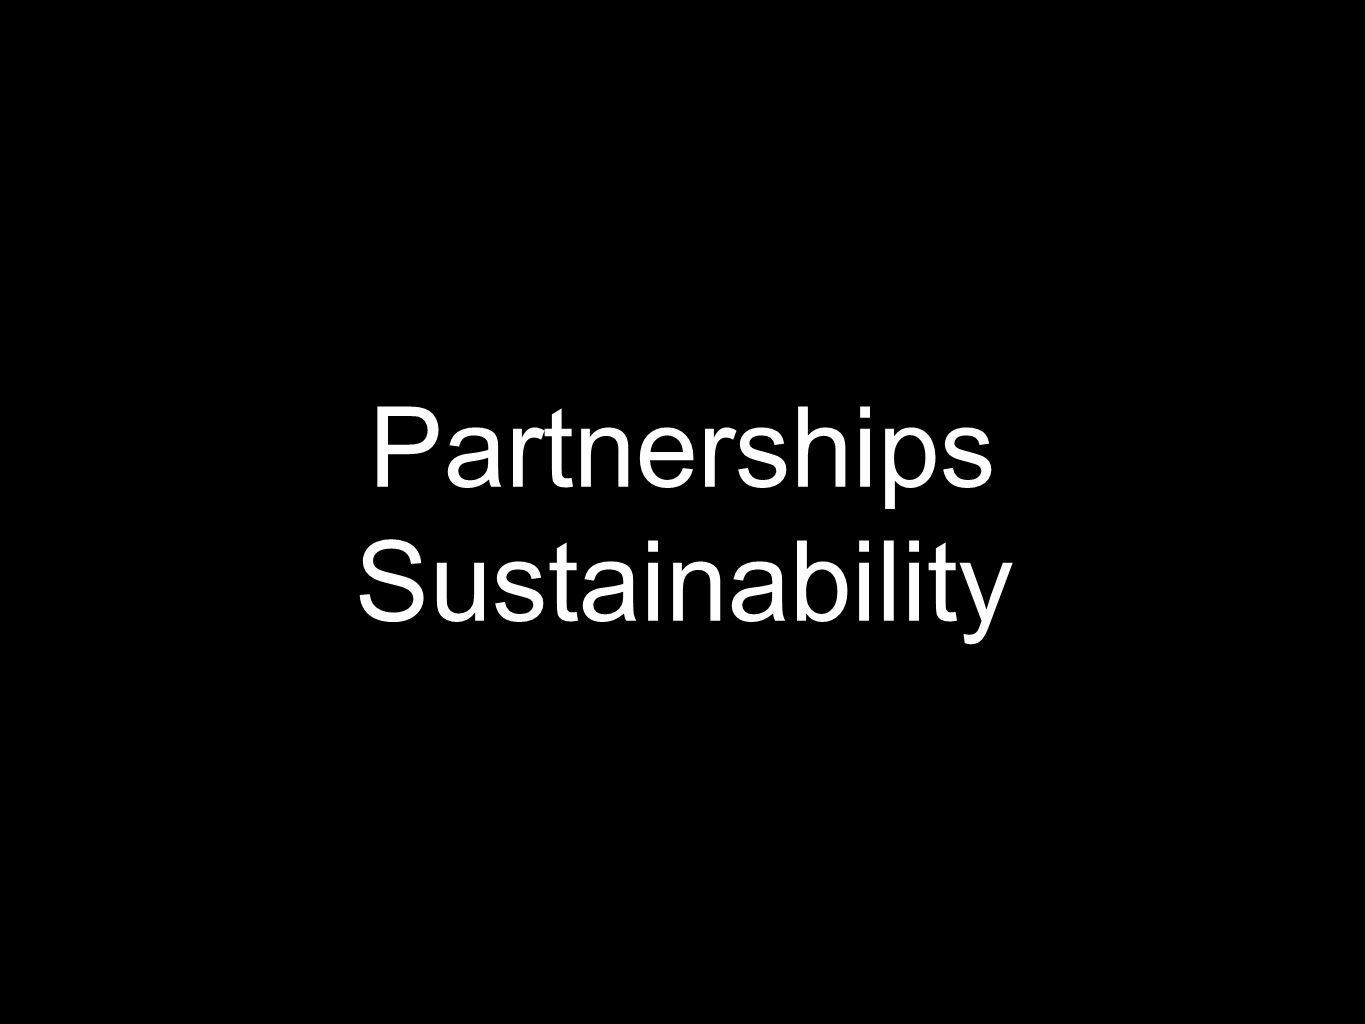 Partnerships Sustainability